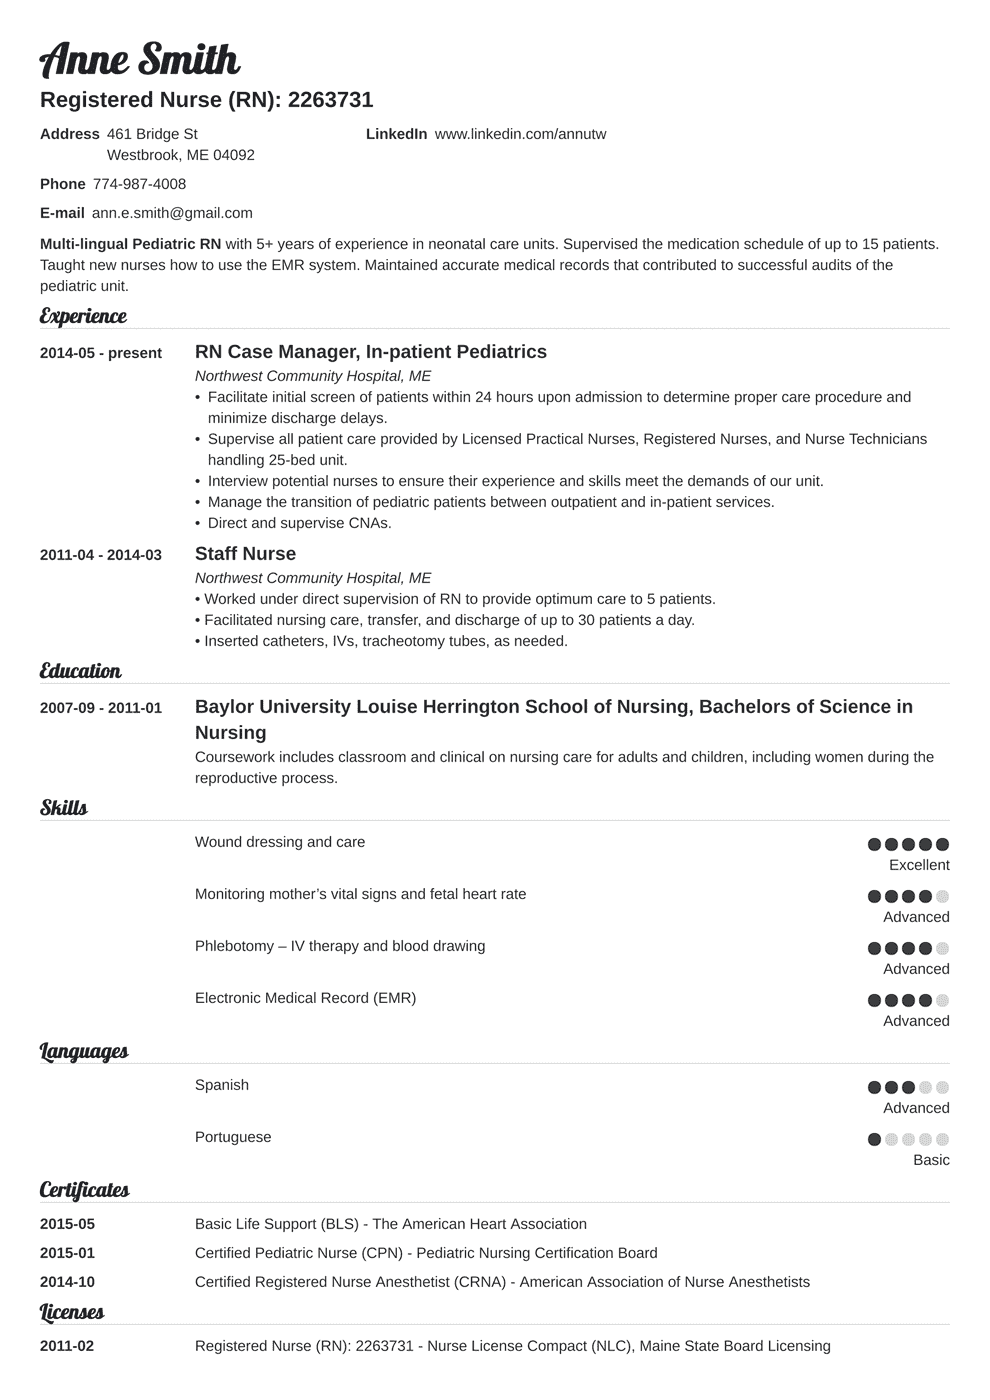 Learn how to write a resume for registered nurses with expert advice, professional tips, and the best registered nurse resume sample. 20 Nursing Resume Examples 2021 Template Skills Guide